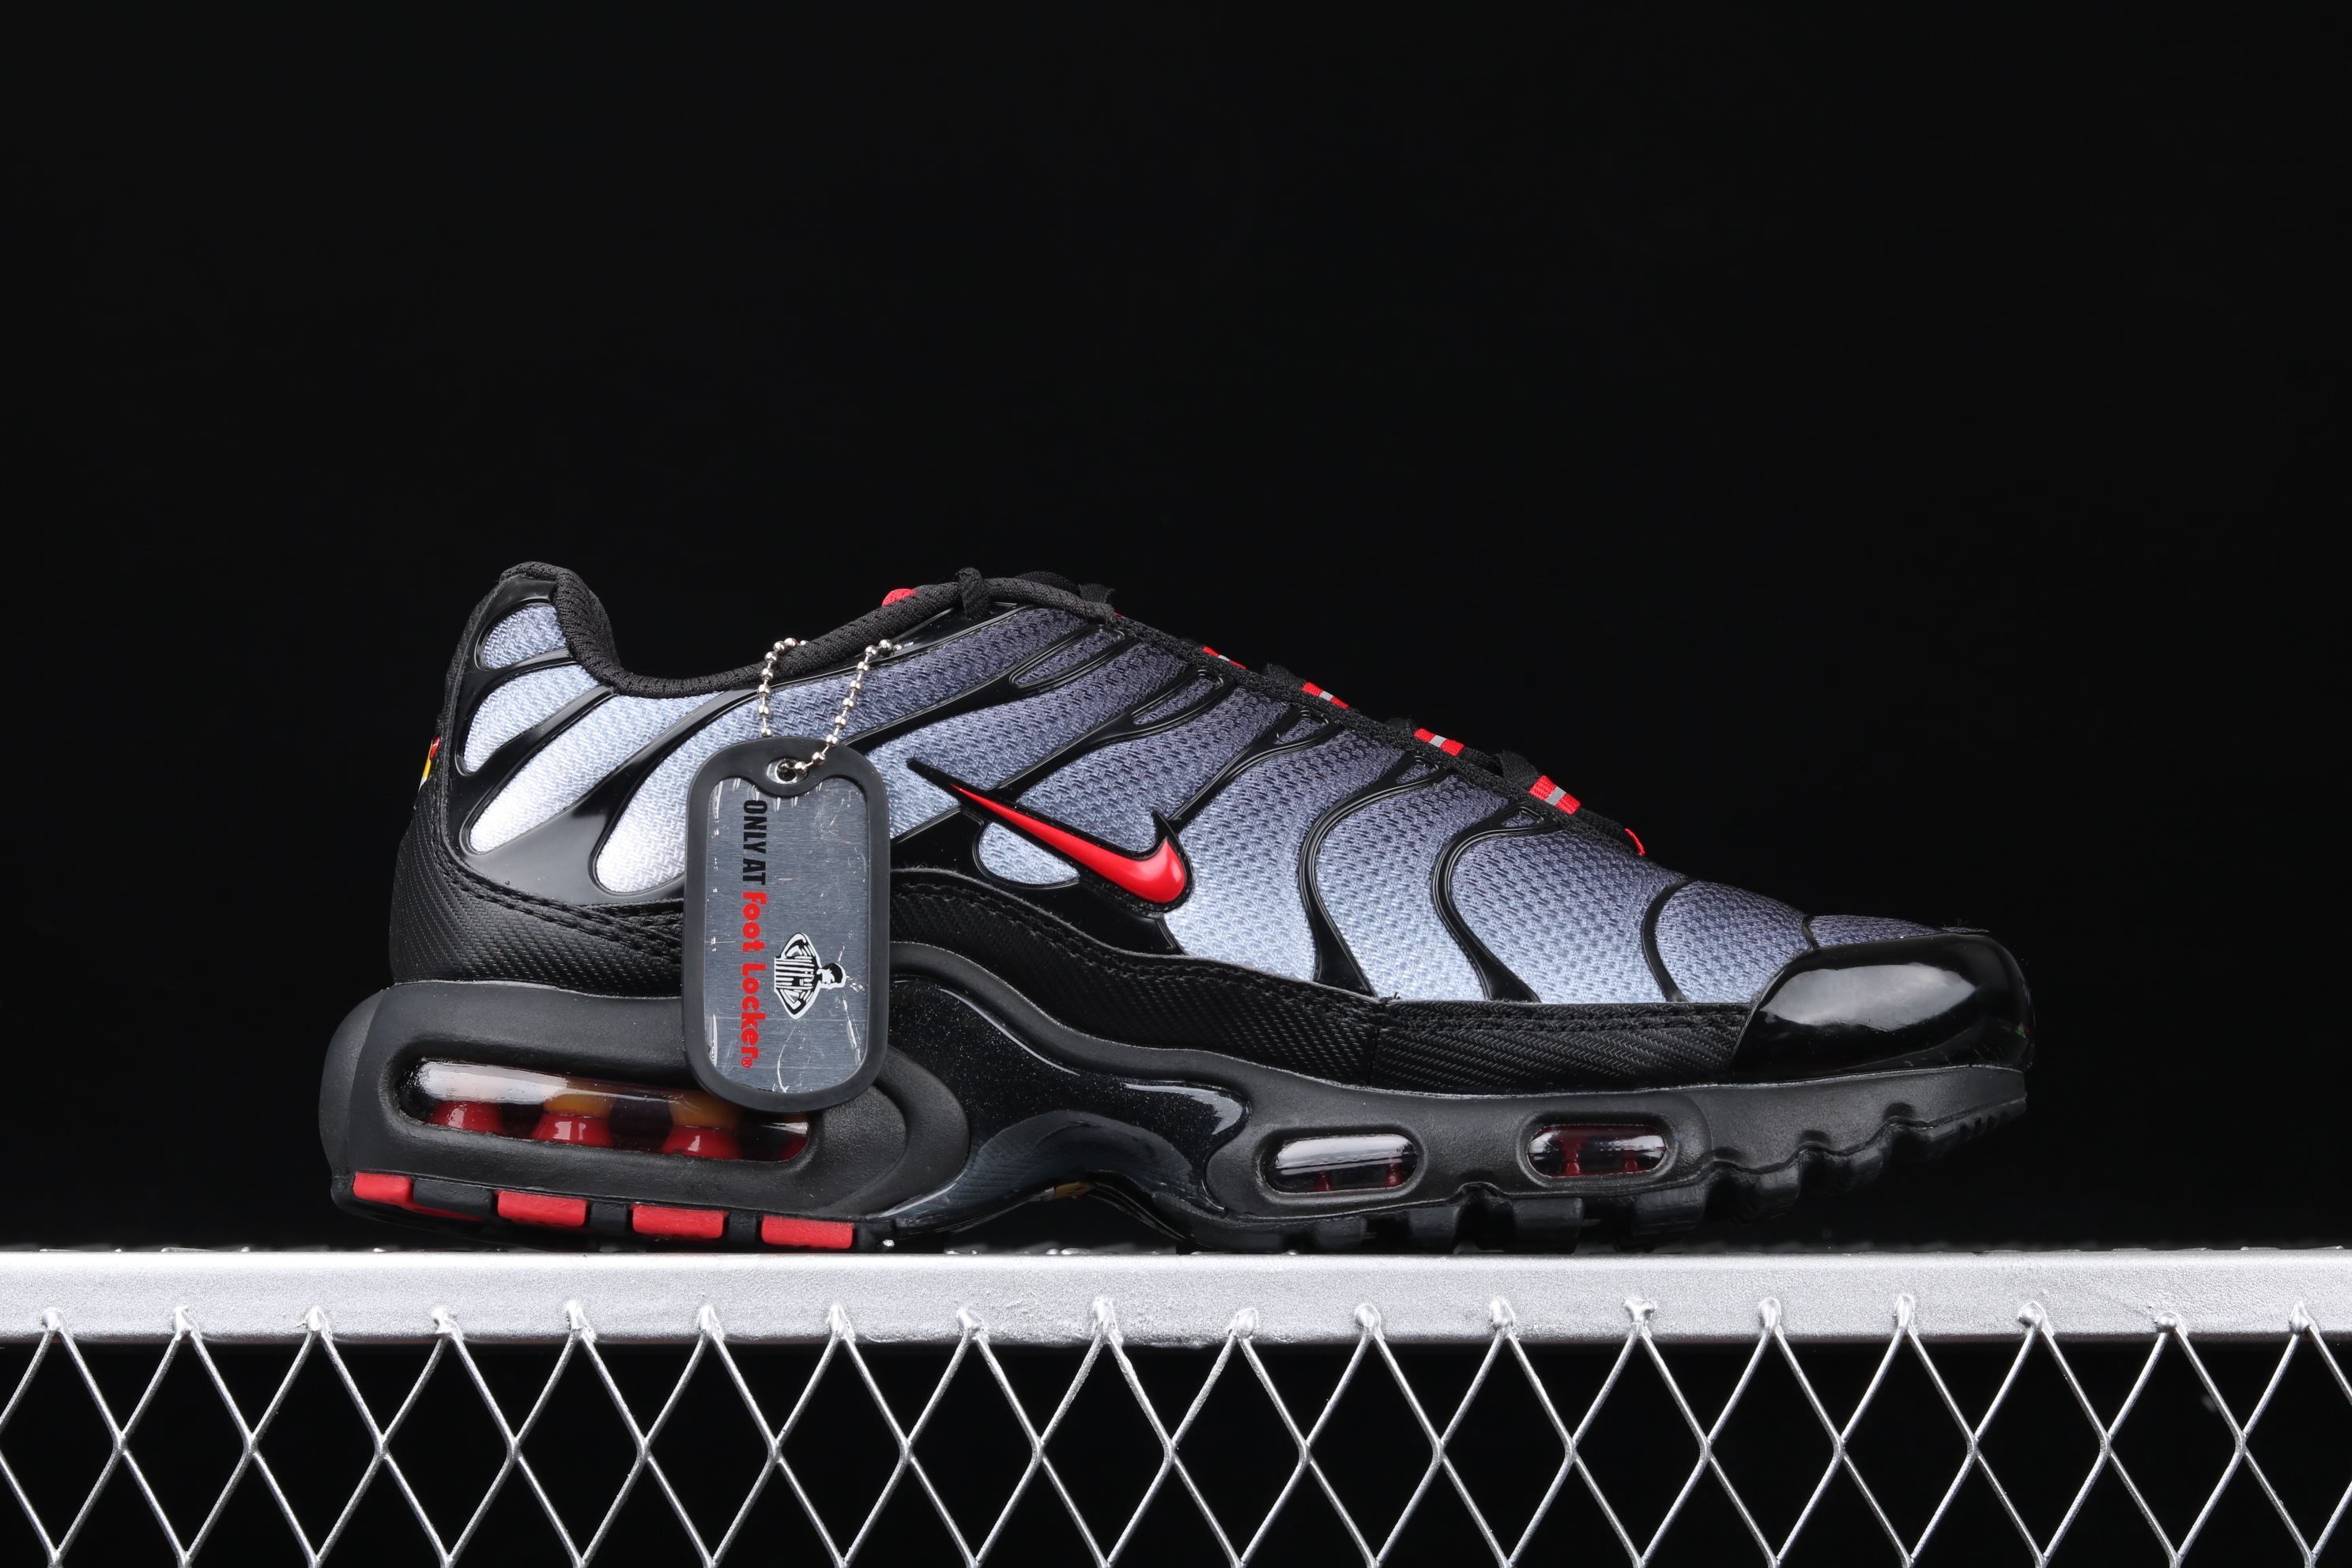 New Men Nike Air Max PLUS TXT Black Grey Red Running Shoes